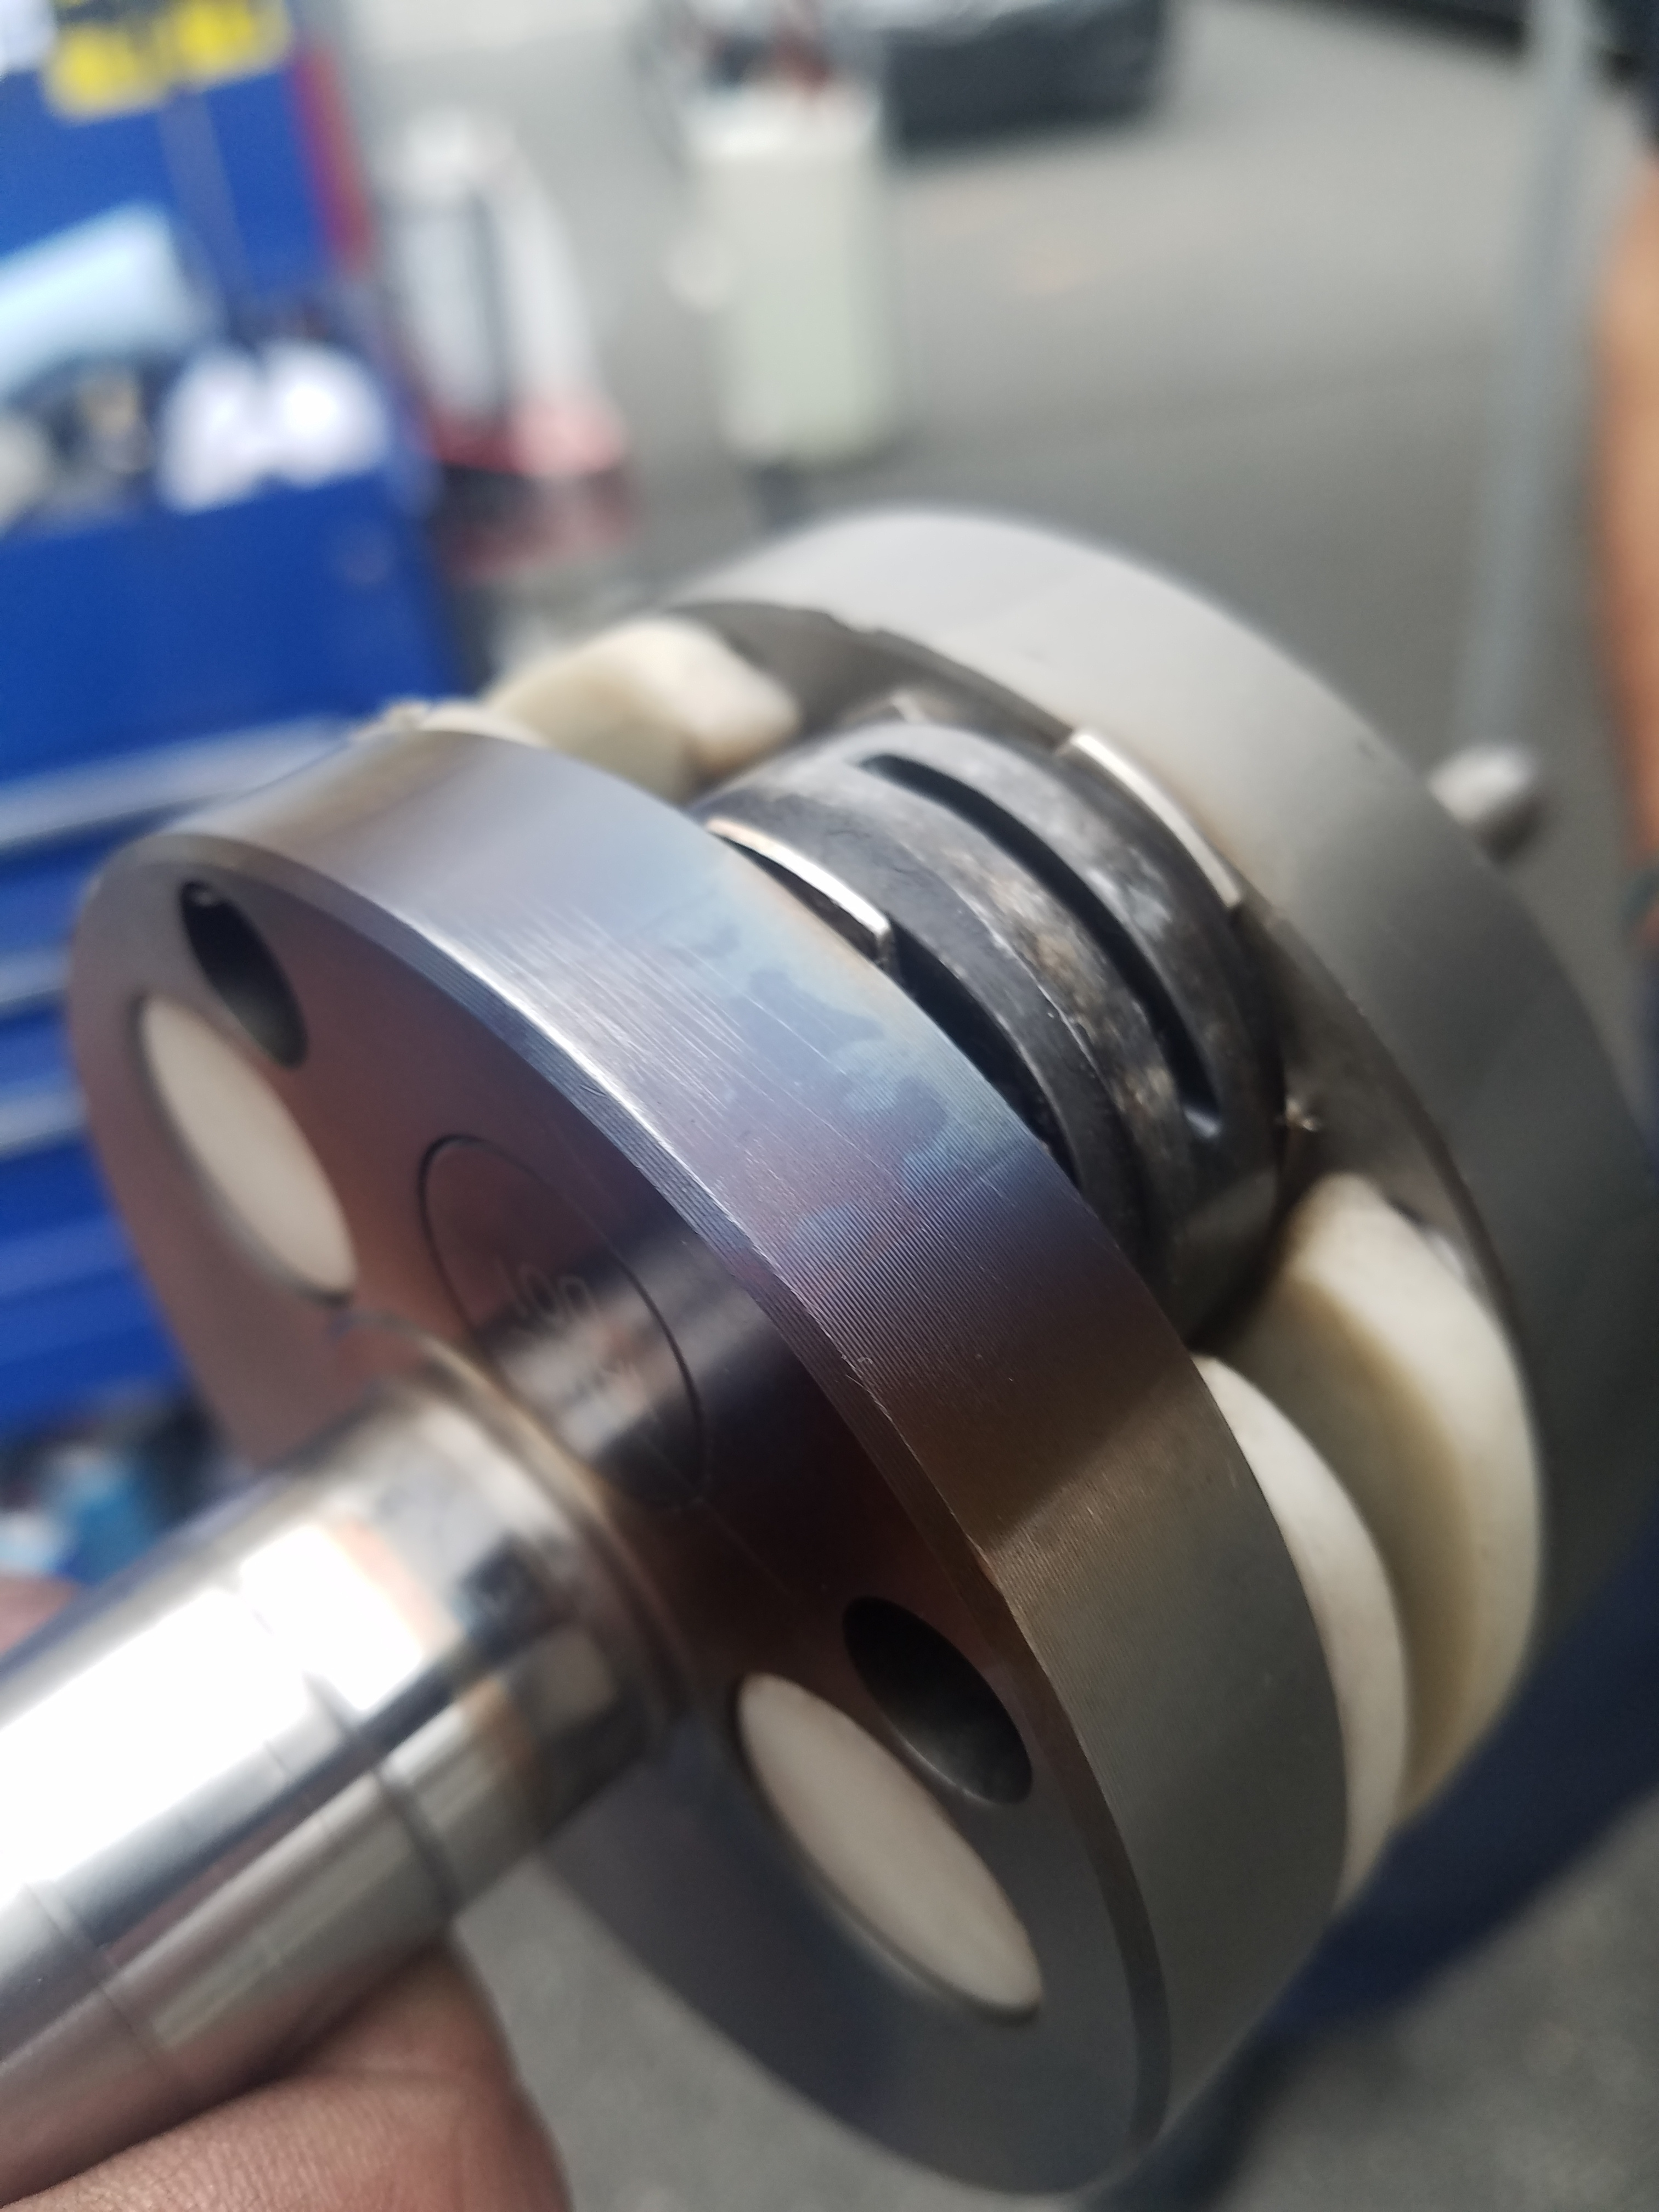 KA100 rod bearing failure - 2 Stroke Engine Help and Discussion